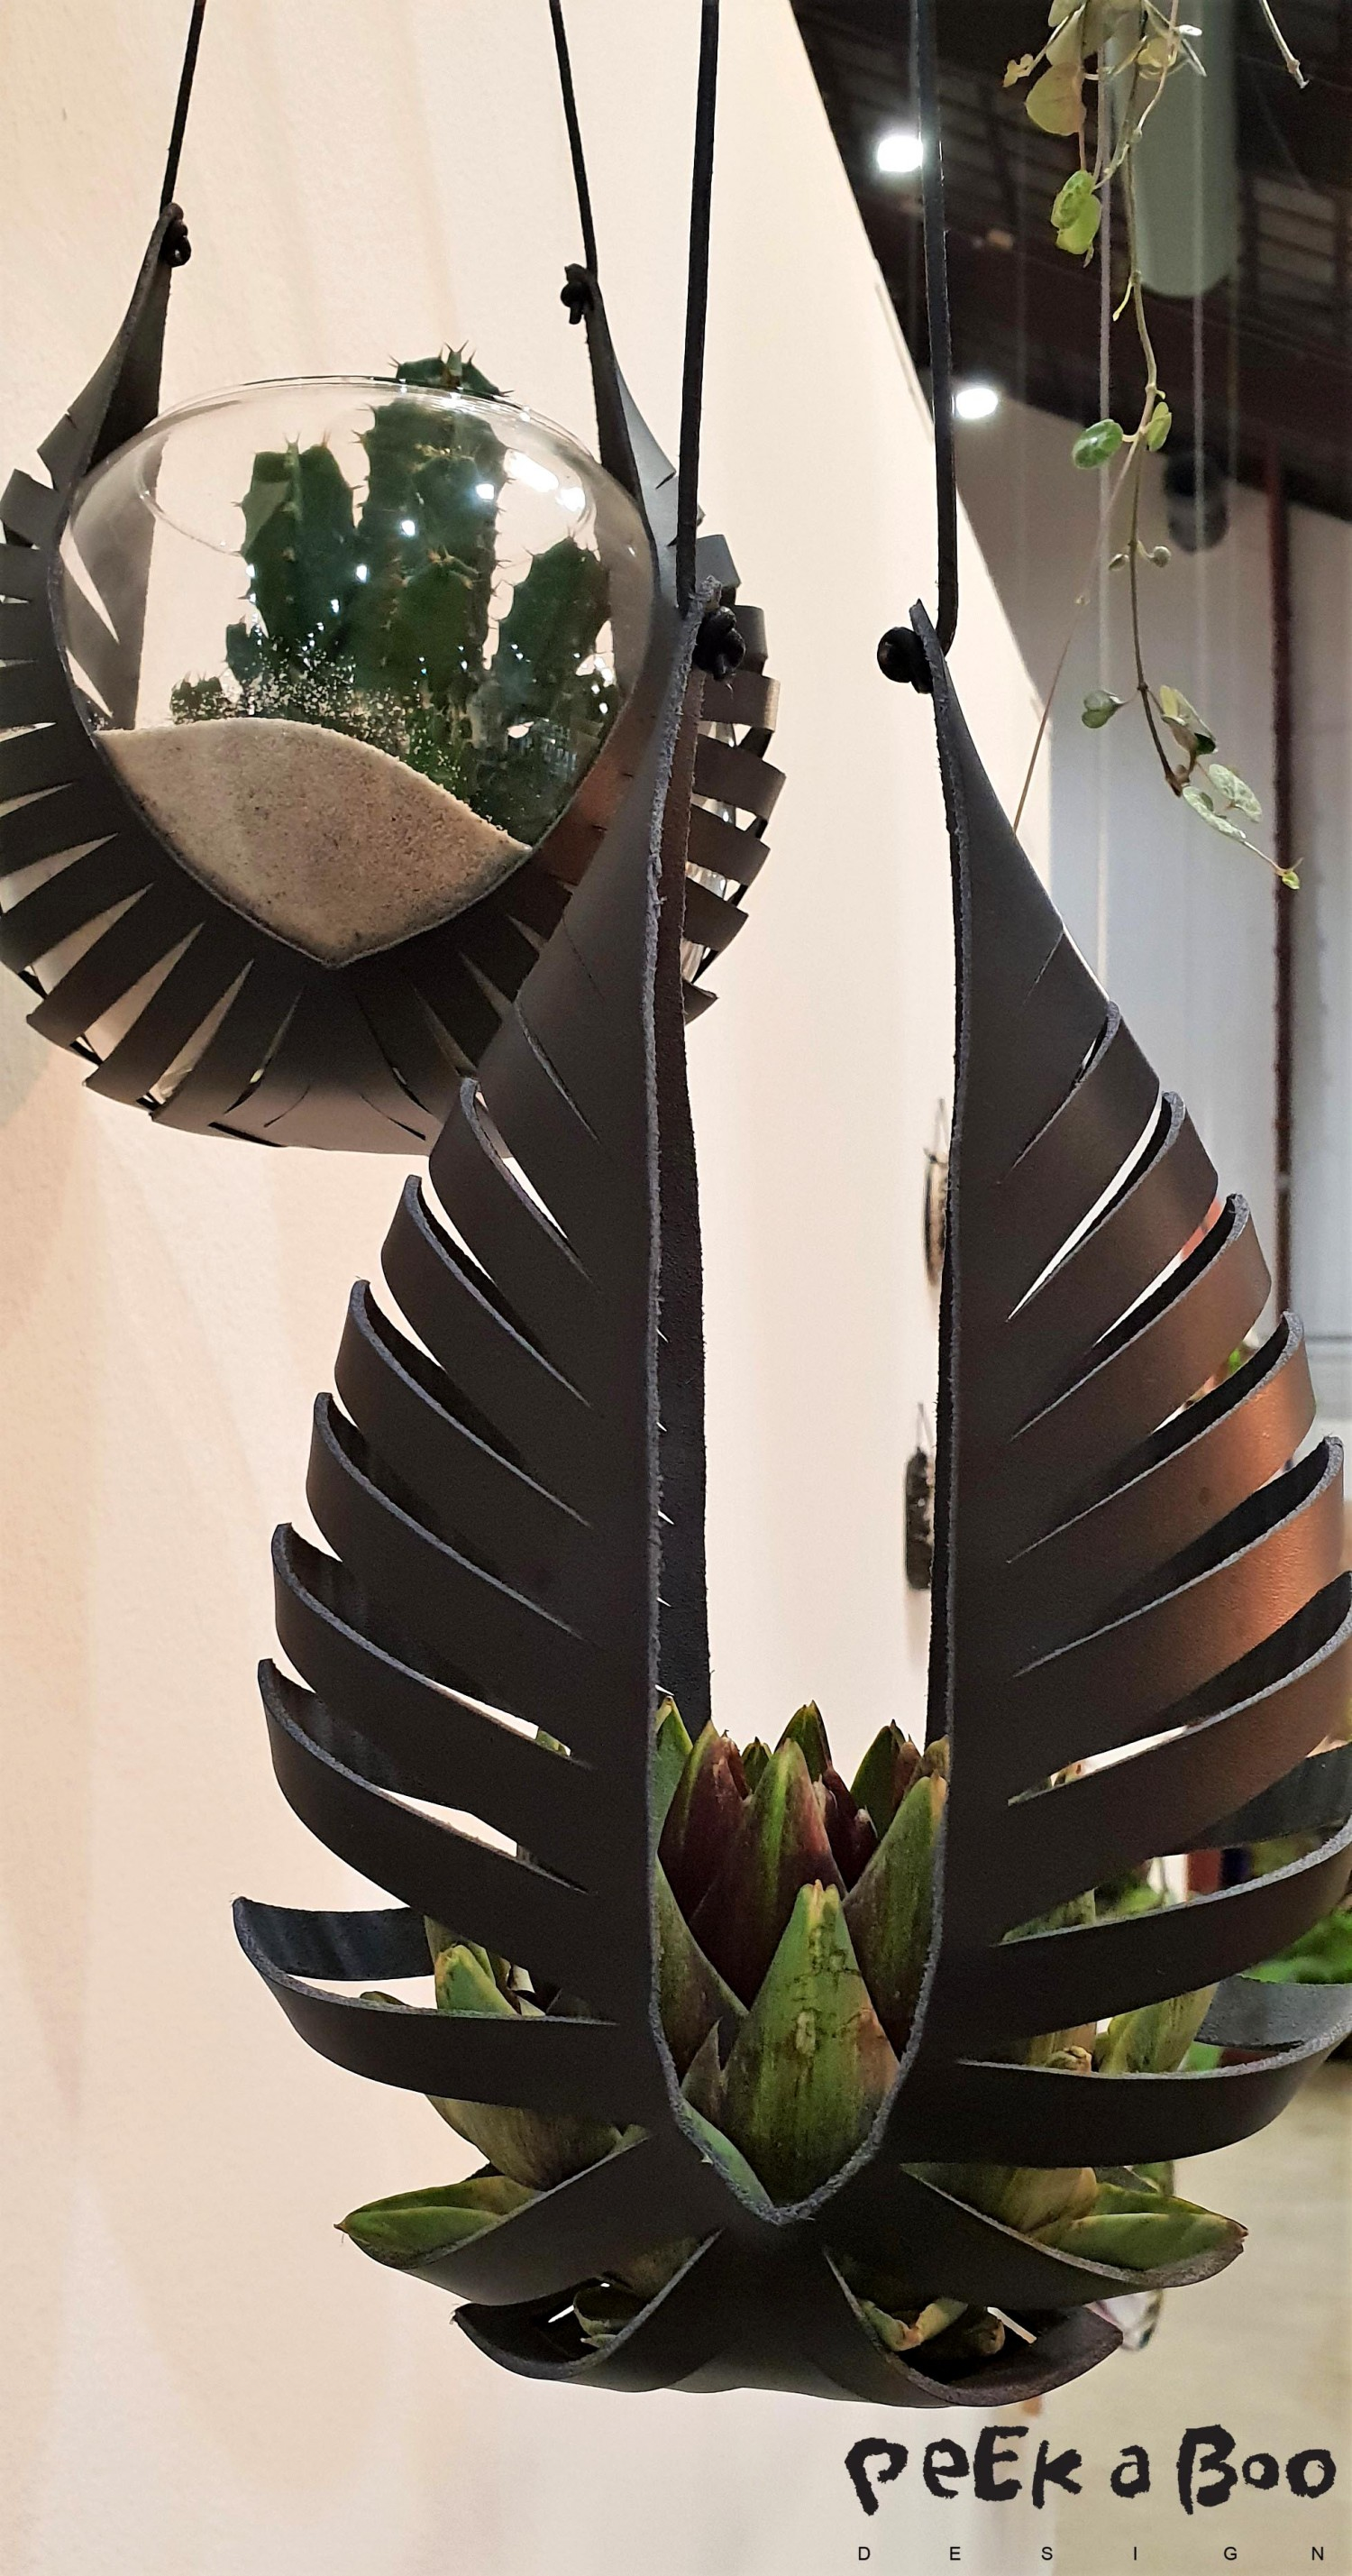 Leather hangers for your plants or bowls. From the danish brand Klejn & Strup.